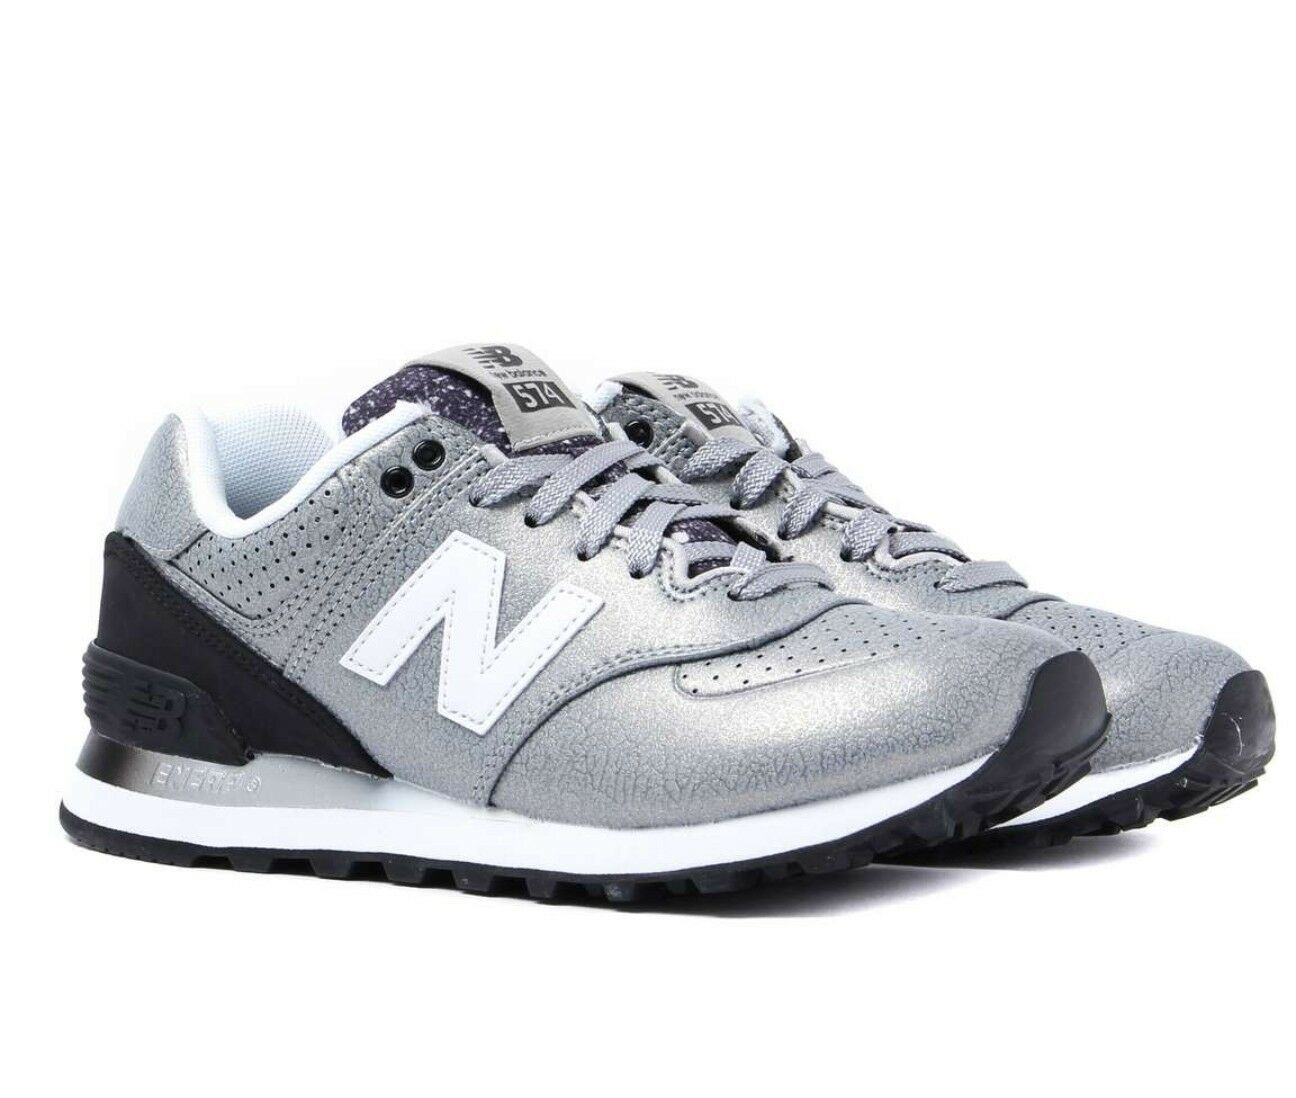 New Balance Women's 574 Low Top Trainers - Silver Leather size uk 4.5 eur 37 #